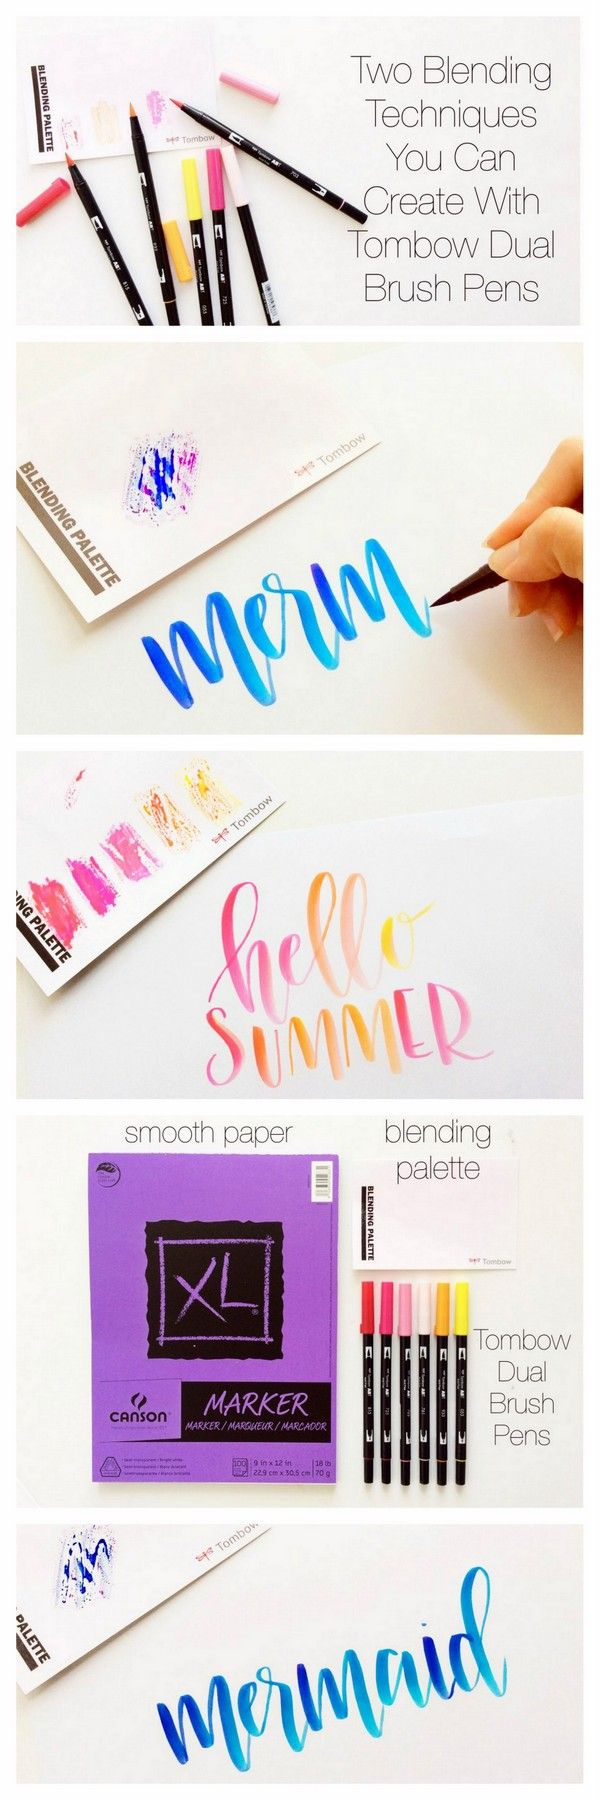 Brush calligraphy blending techniques crafts design and